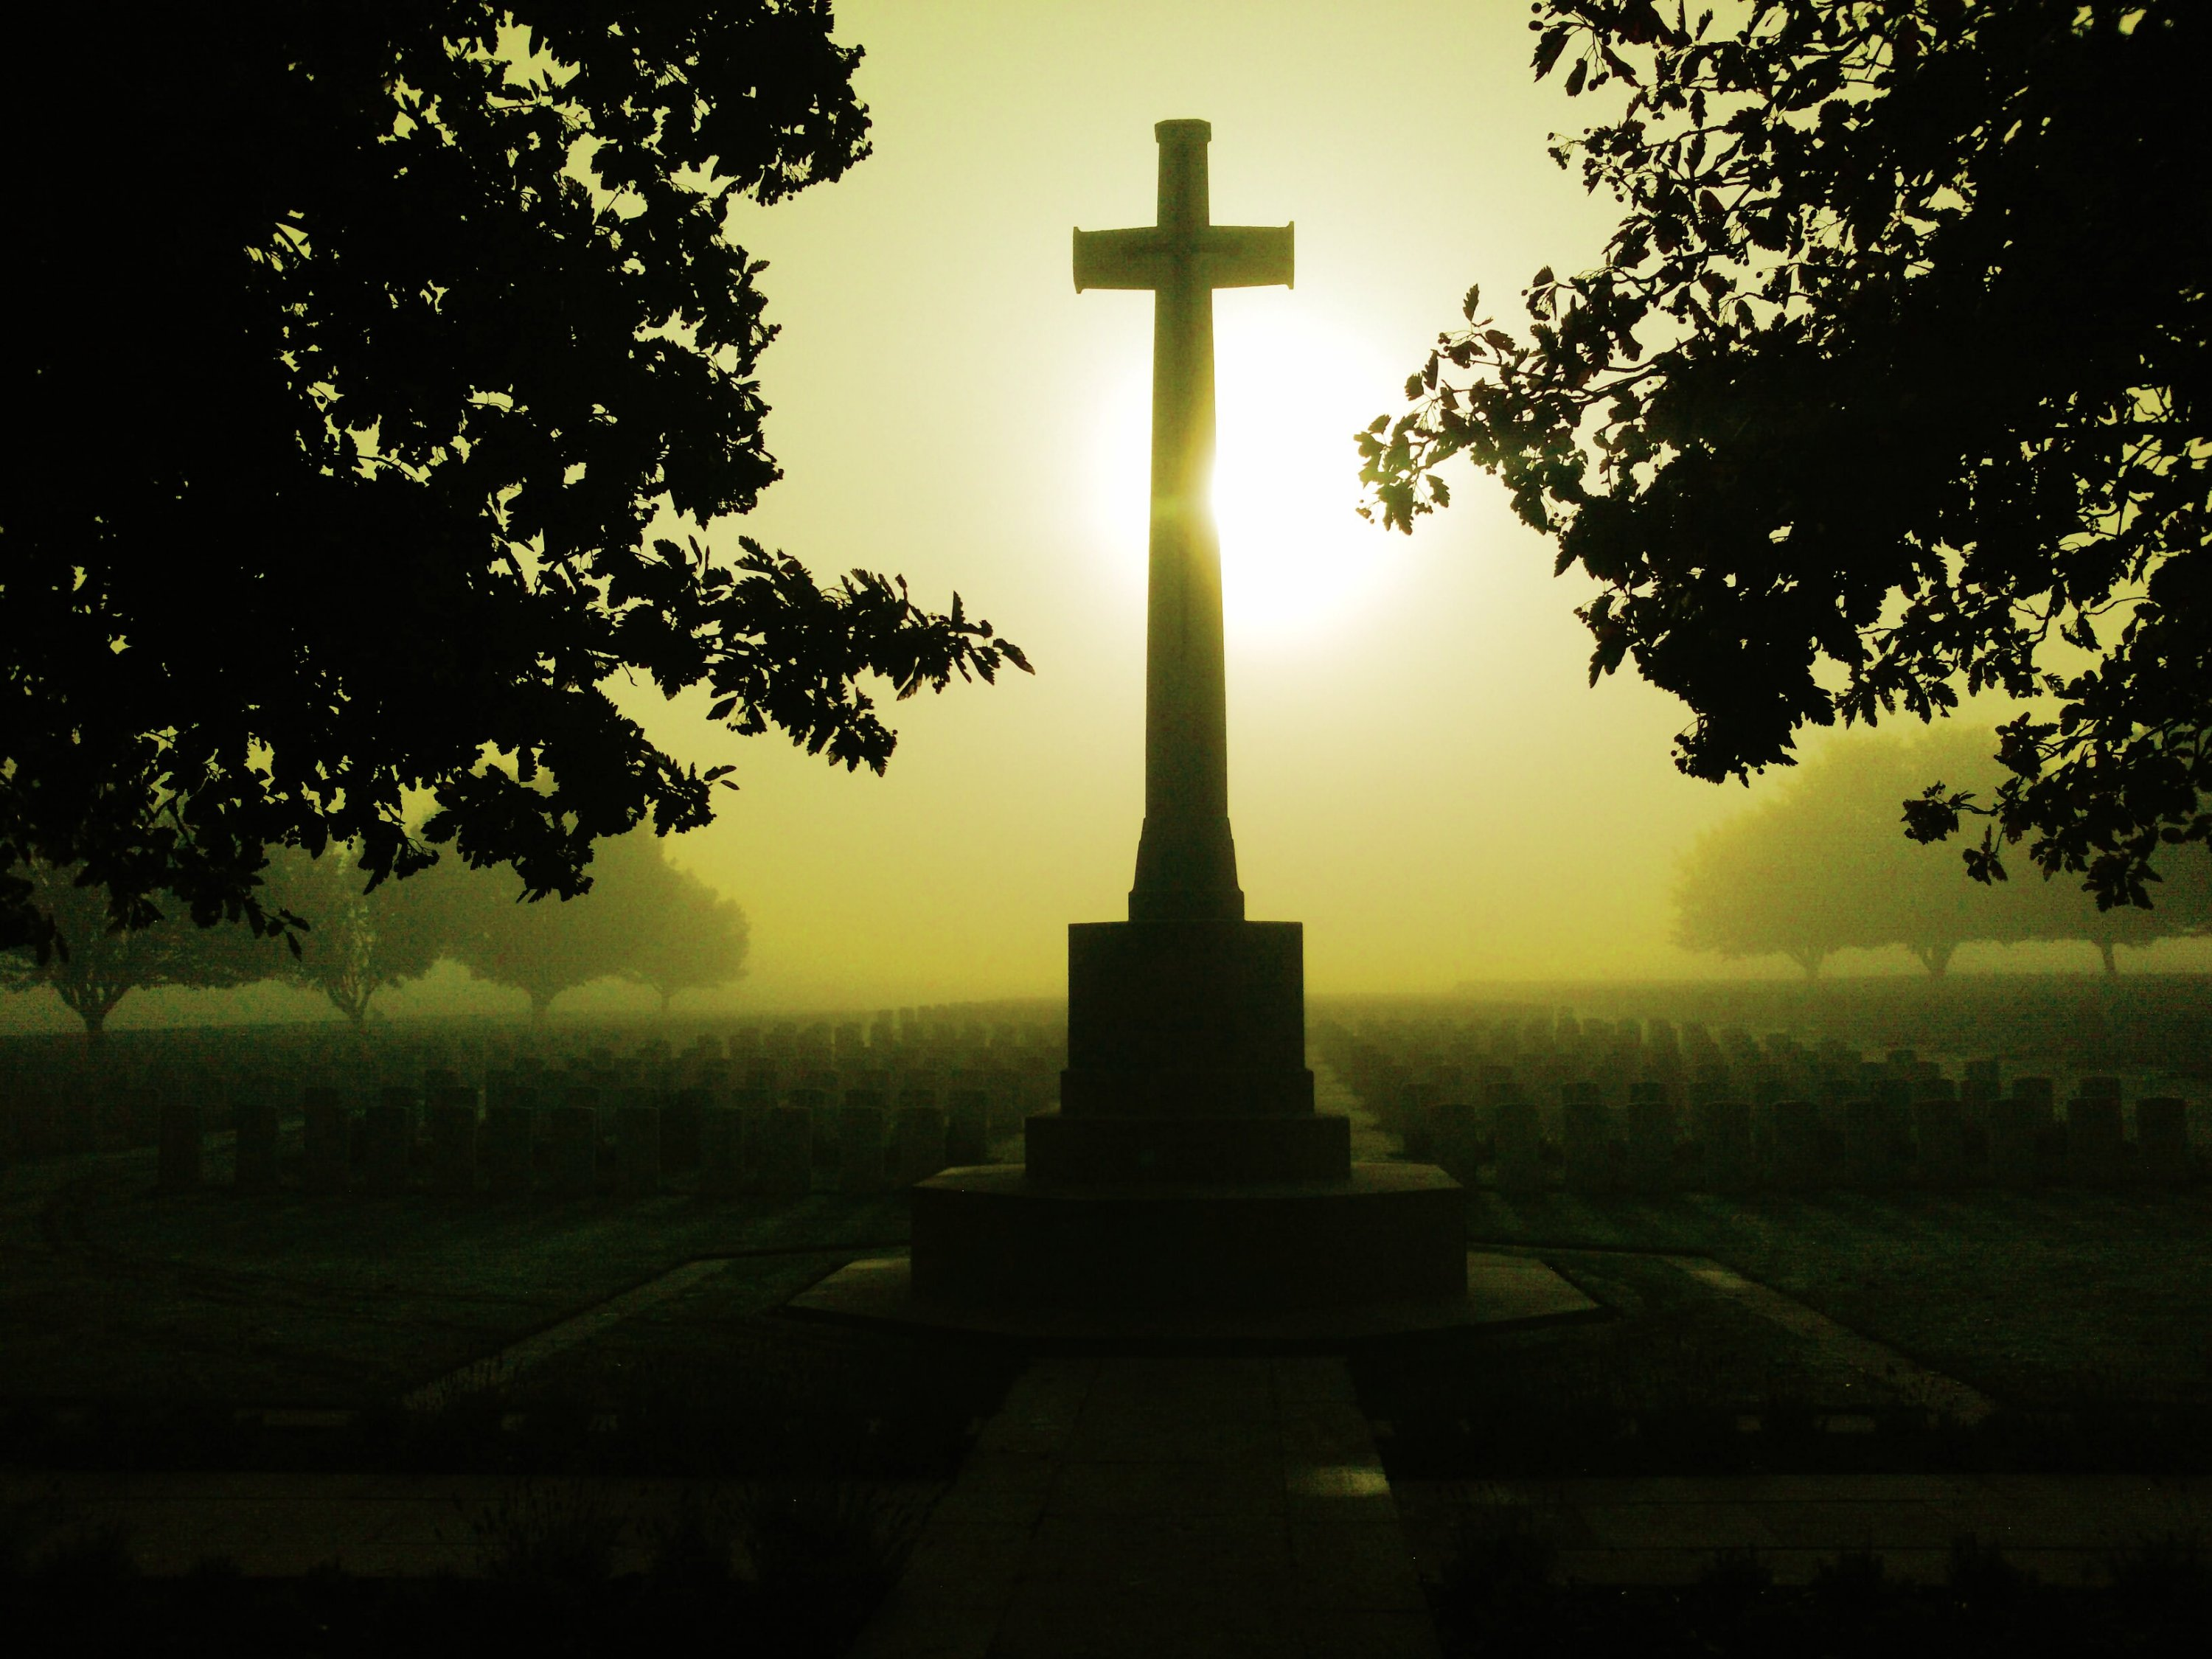 Misty Dawn On The Somme, Battlefield, Grave, War, Somme, HQ Photo